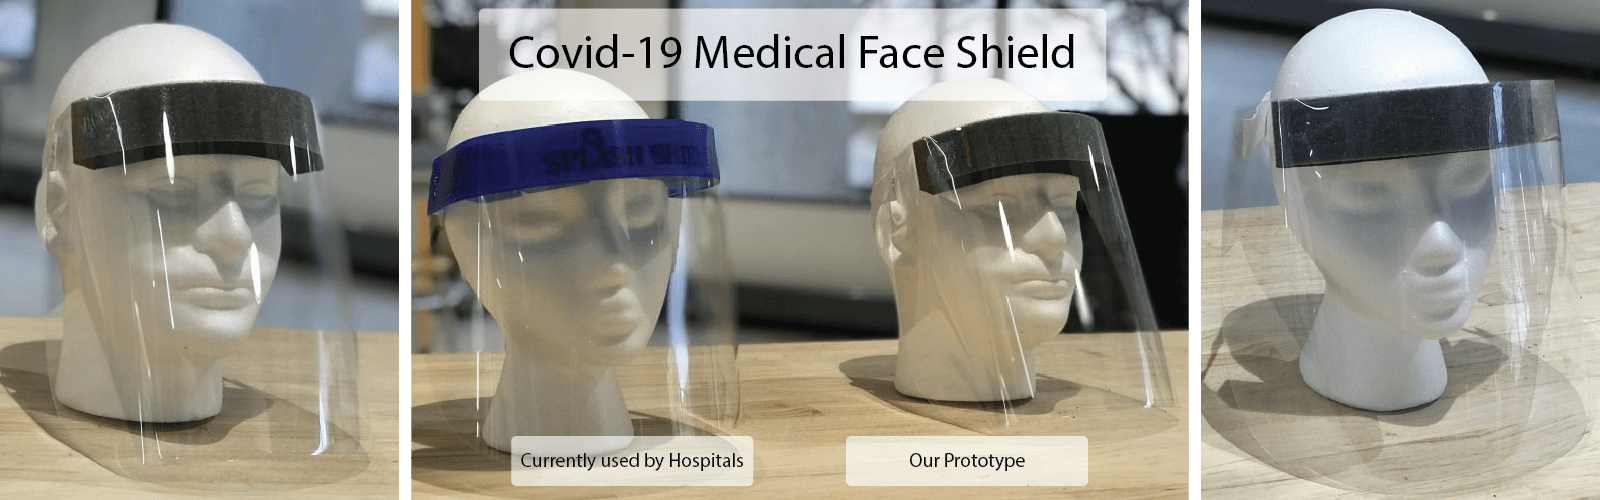 A comparison of the open source Covid-19 medical face shield with the face shield currently used by hospitals